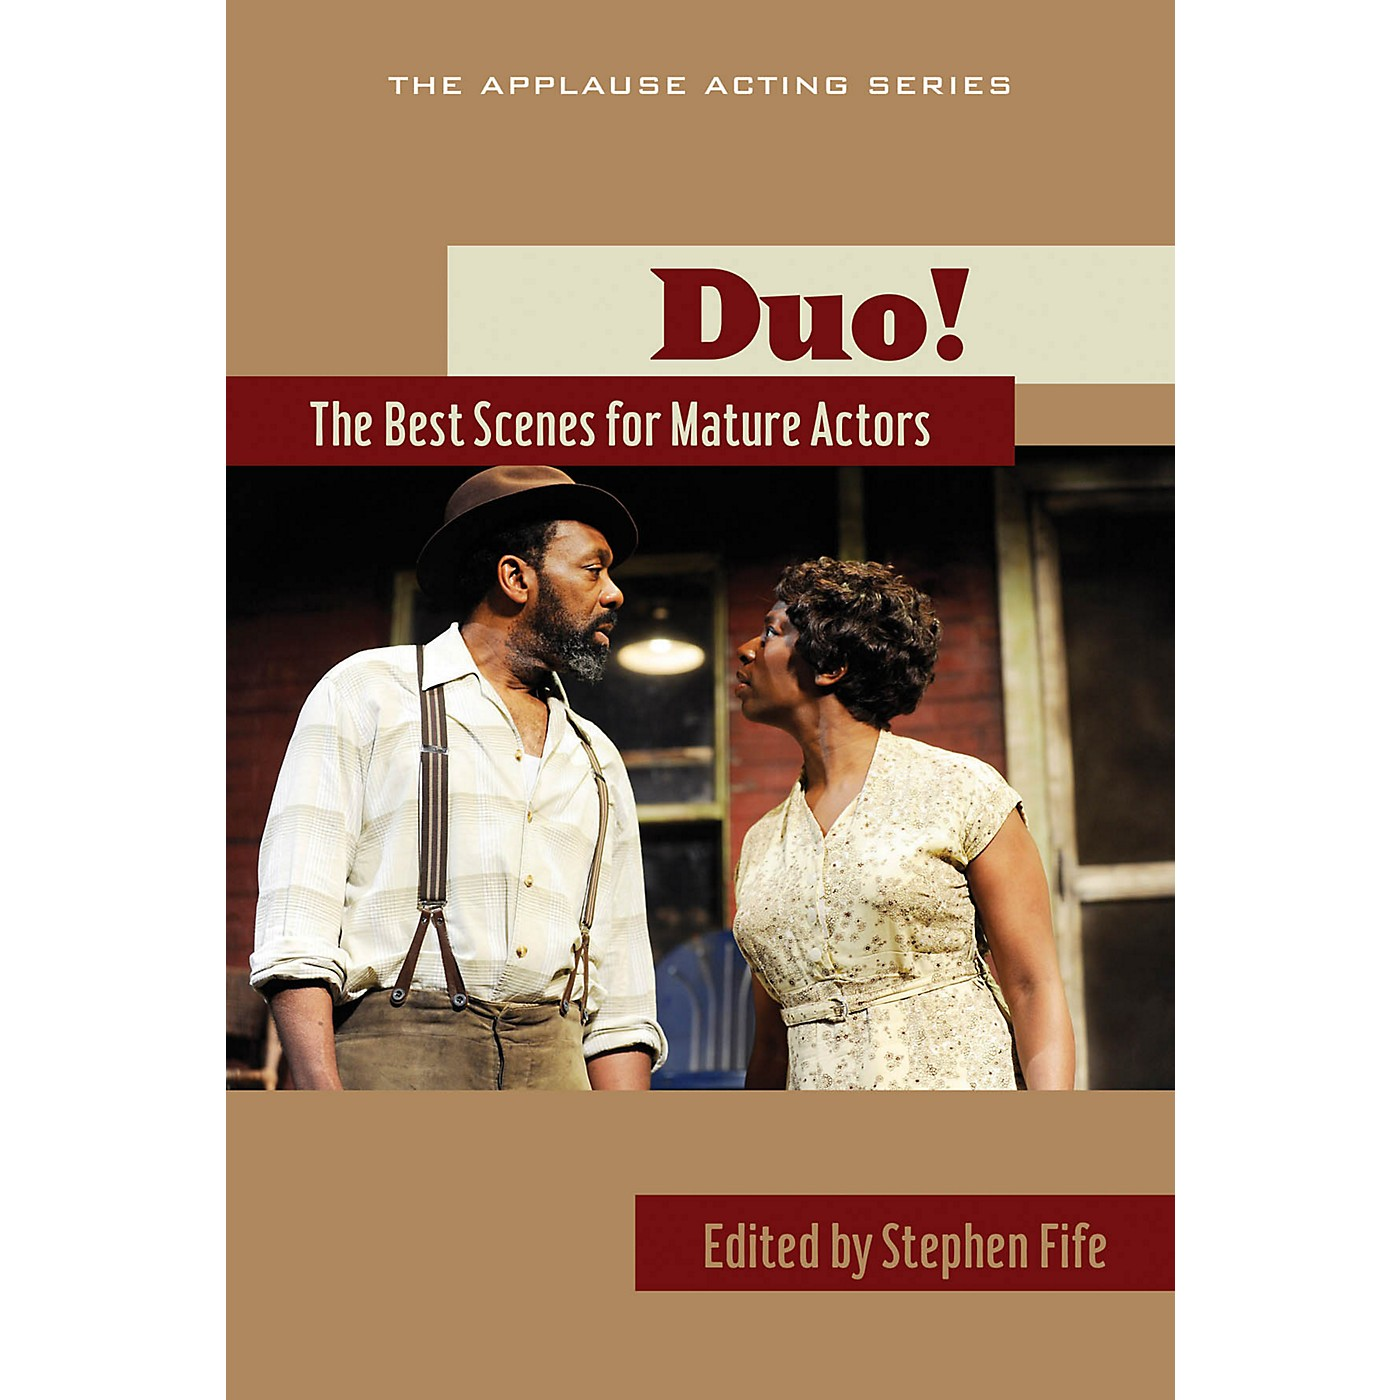 Applause Books Duo!: The Best Scenes for Mature Actors Applause Acting Series Series Softcover thumbnail